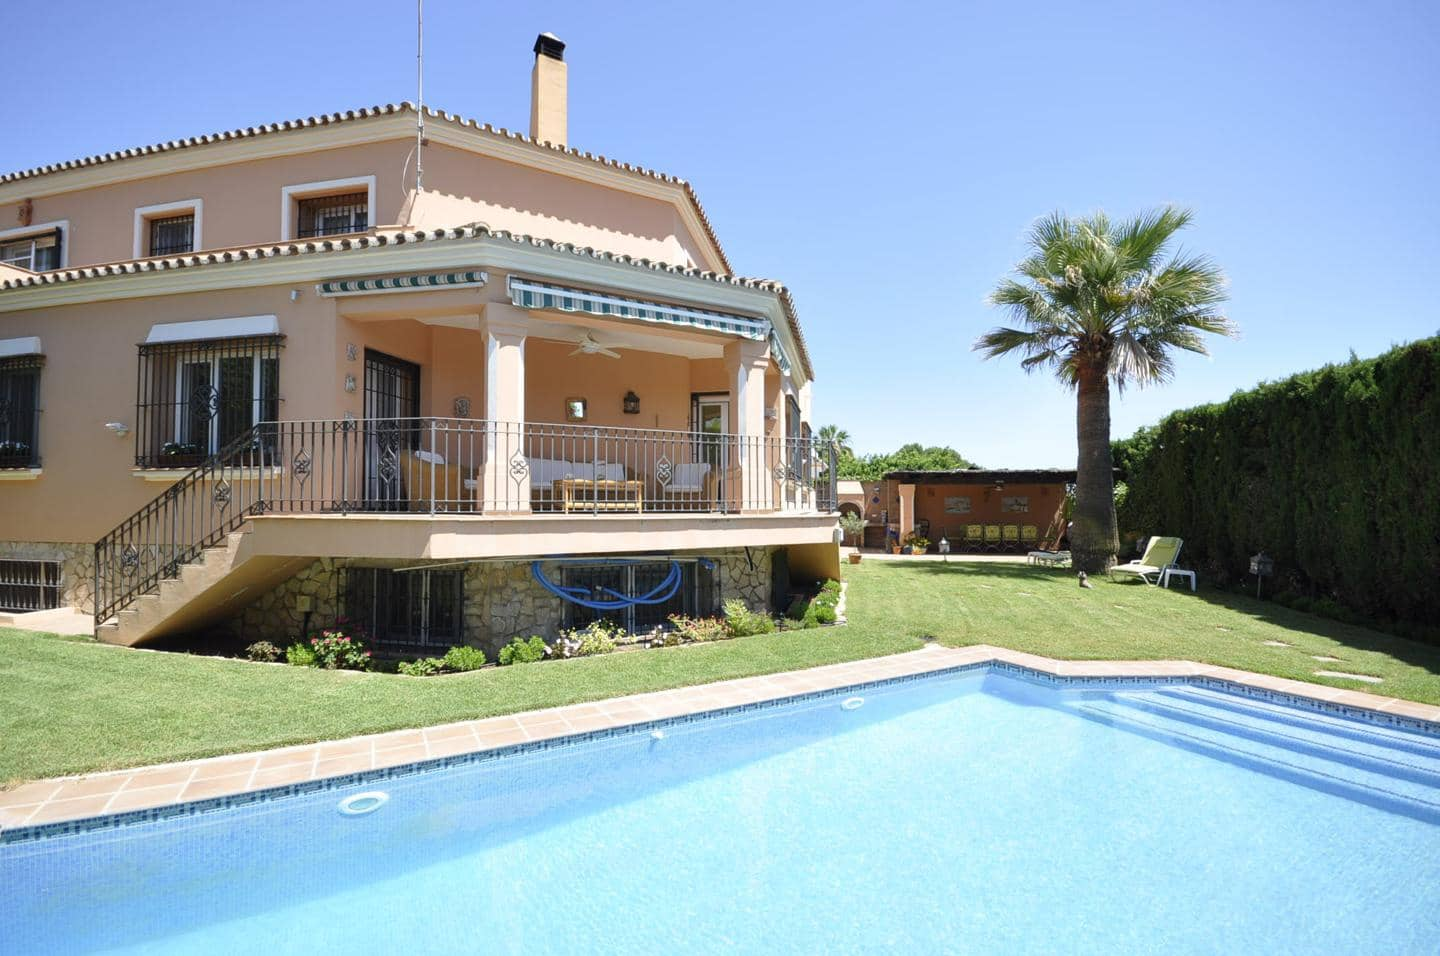 6 bedroom Villa for sale in Marbella - € 1,350,000 (Ref: 5152517)